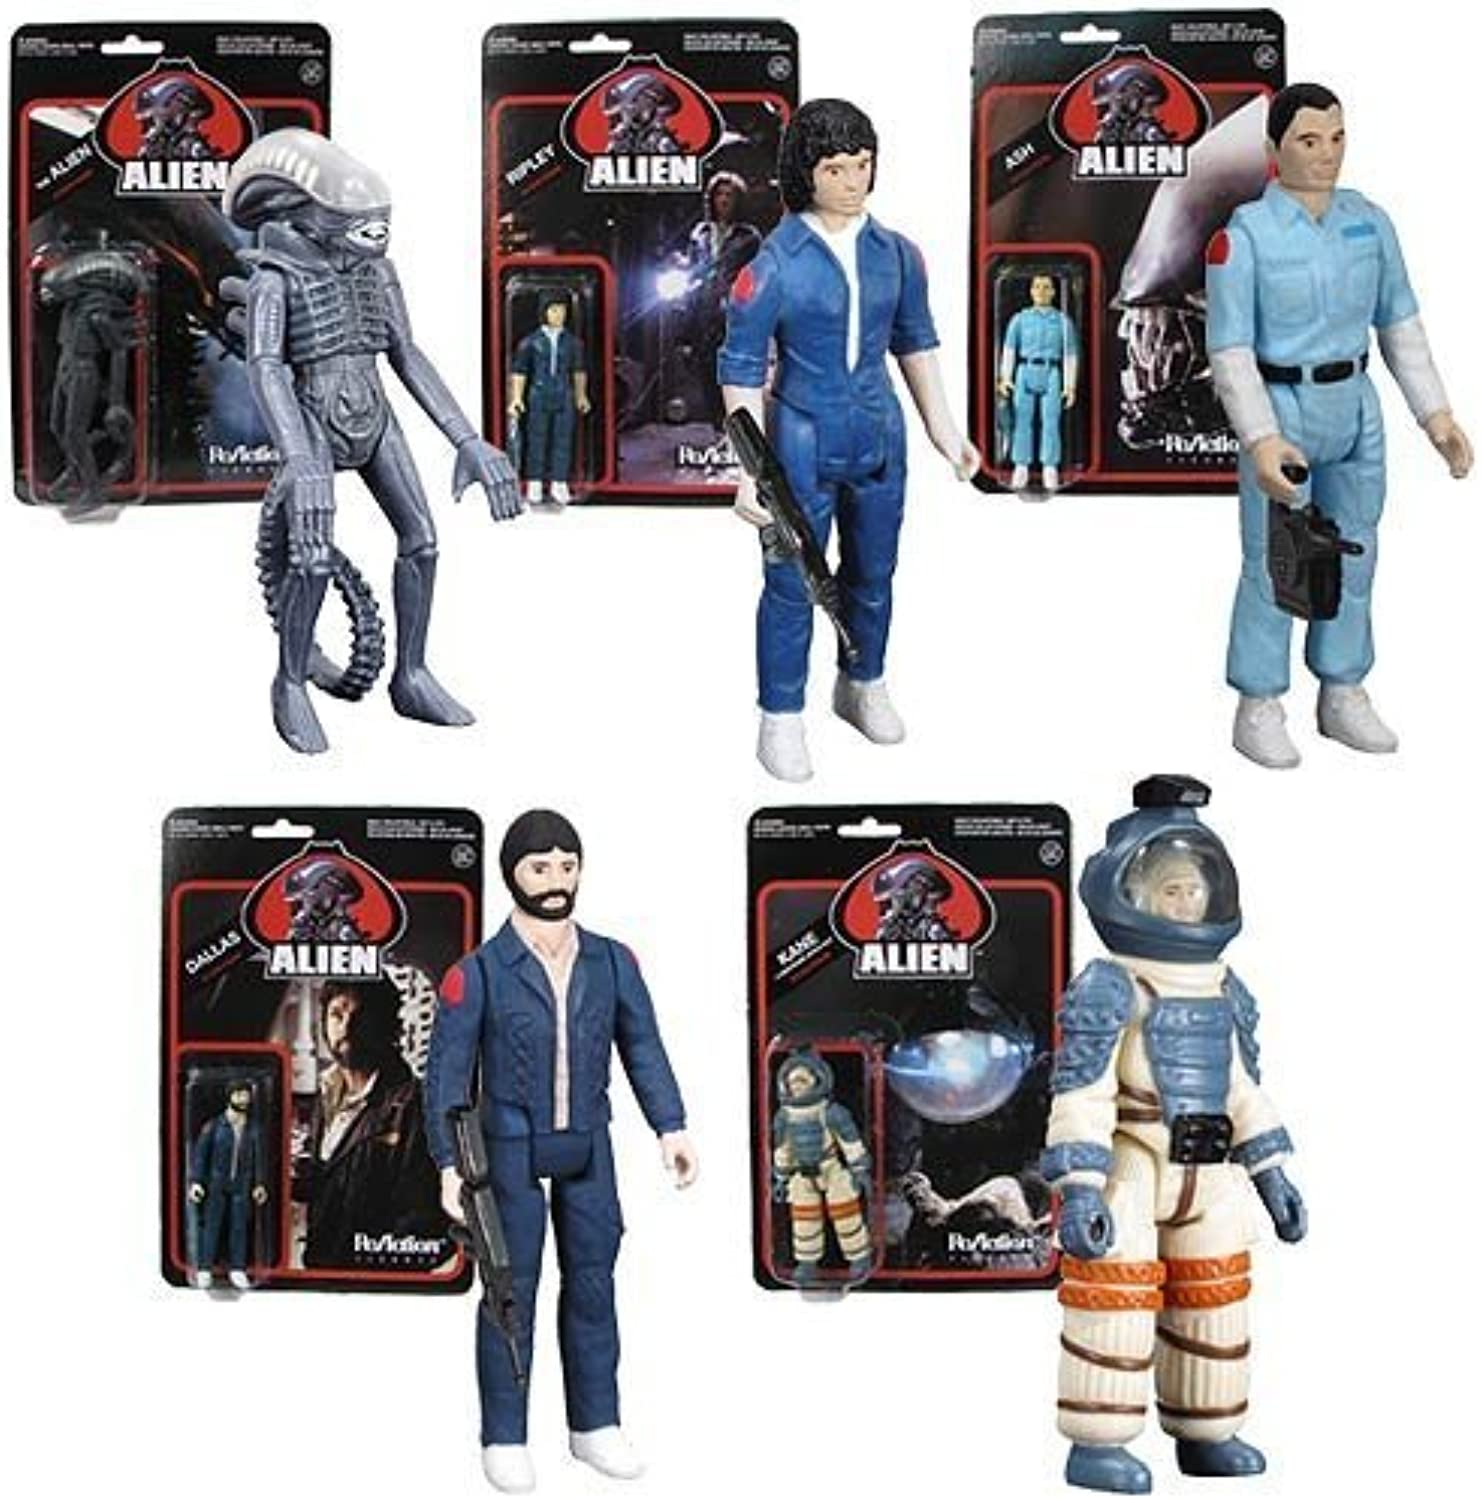 Alien 3 3 4Inch ReAction Figures Set by Super 7